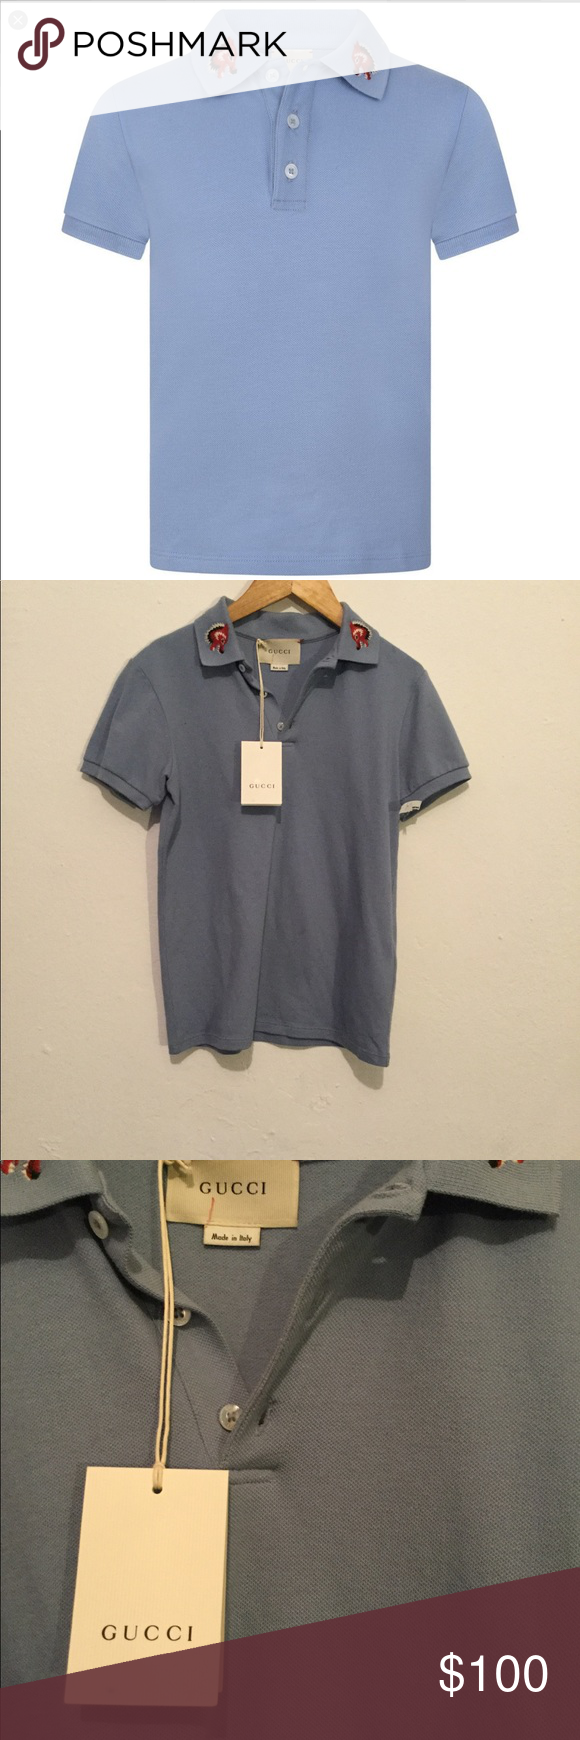 43134ec0 Gucci boys blue wolf collar polo 100% authentic New with tags boys size 10y Gucci  Shirts & Tops Polos